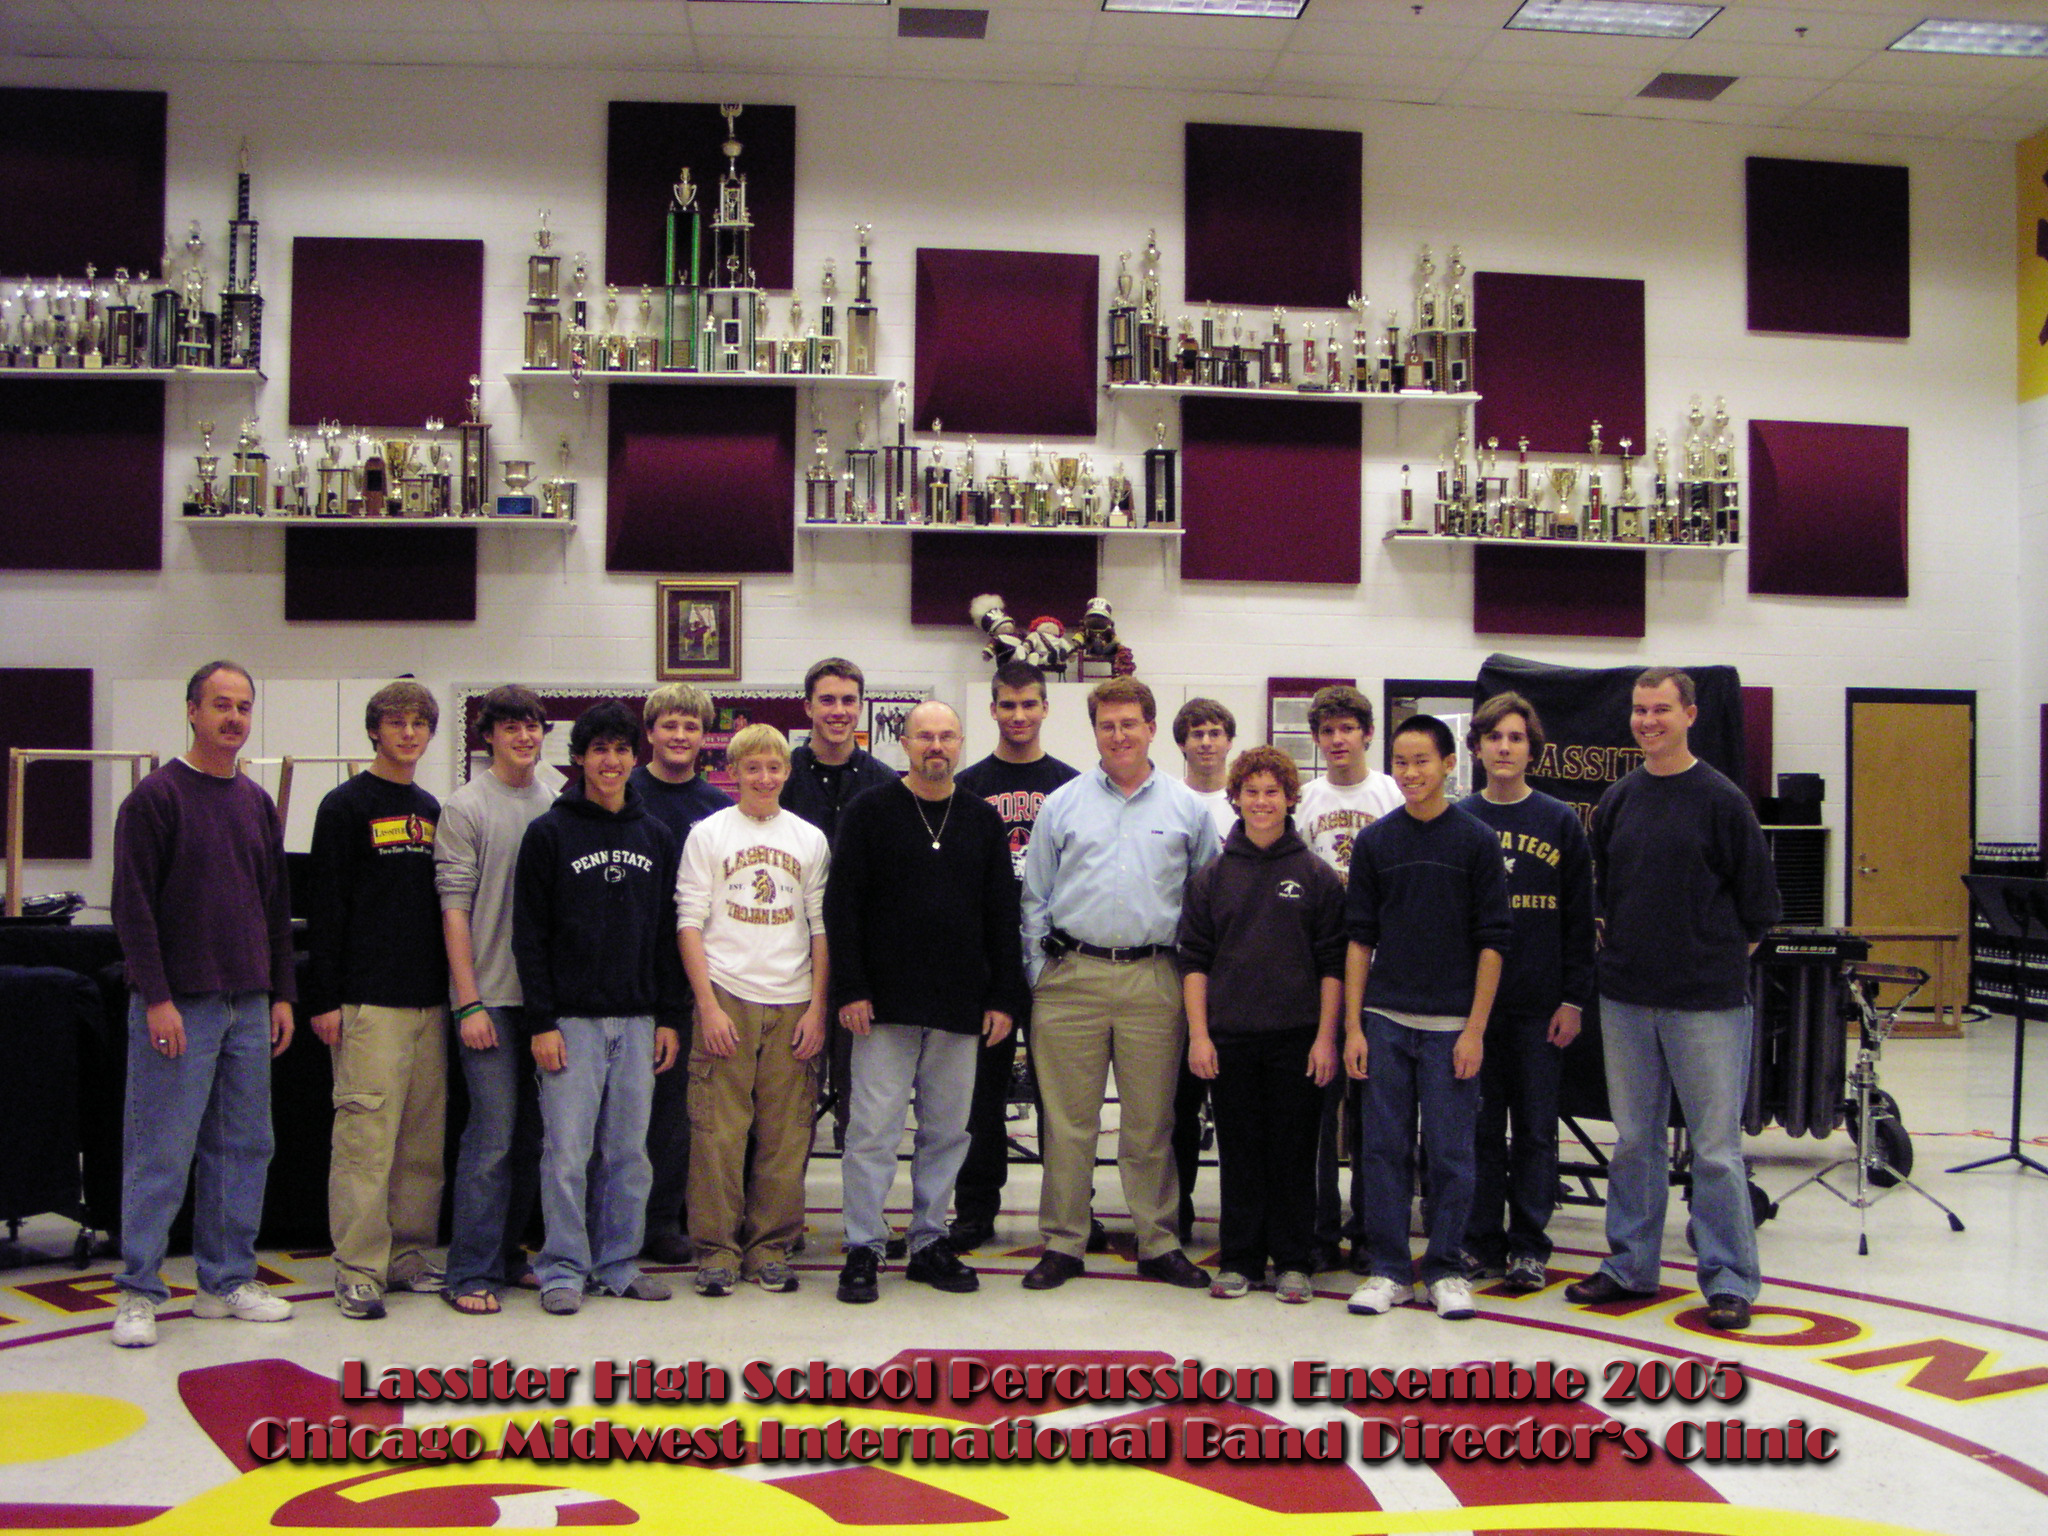 Lassiter HS Percussion Ensemble at Chicago Midwest, 2005